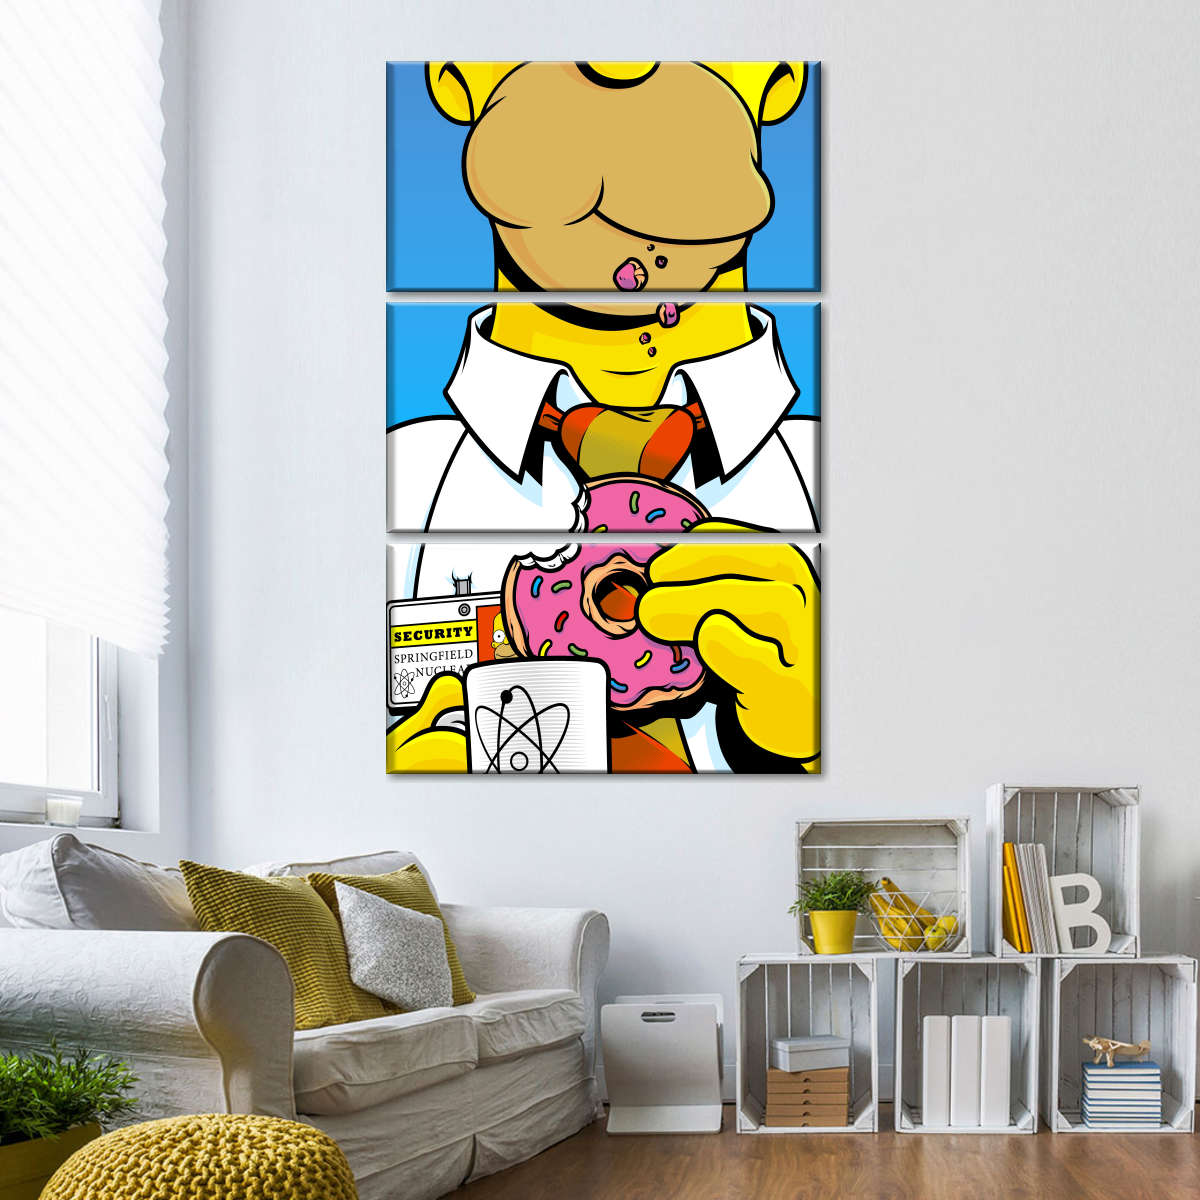 Amazon Com Homer Simpson Cinema The Simpsons Decor Motivational Quotes Wall Decals Pop Art Gifts Portrait Framed Famous Paintings On Acrylic Canvas Poster Prints Artwork Geek 10x10 25 4cm X 25 4cm Posters Prints